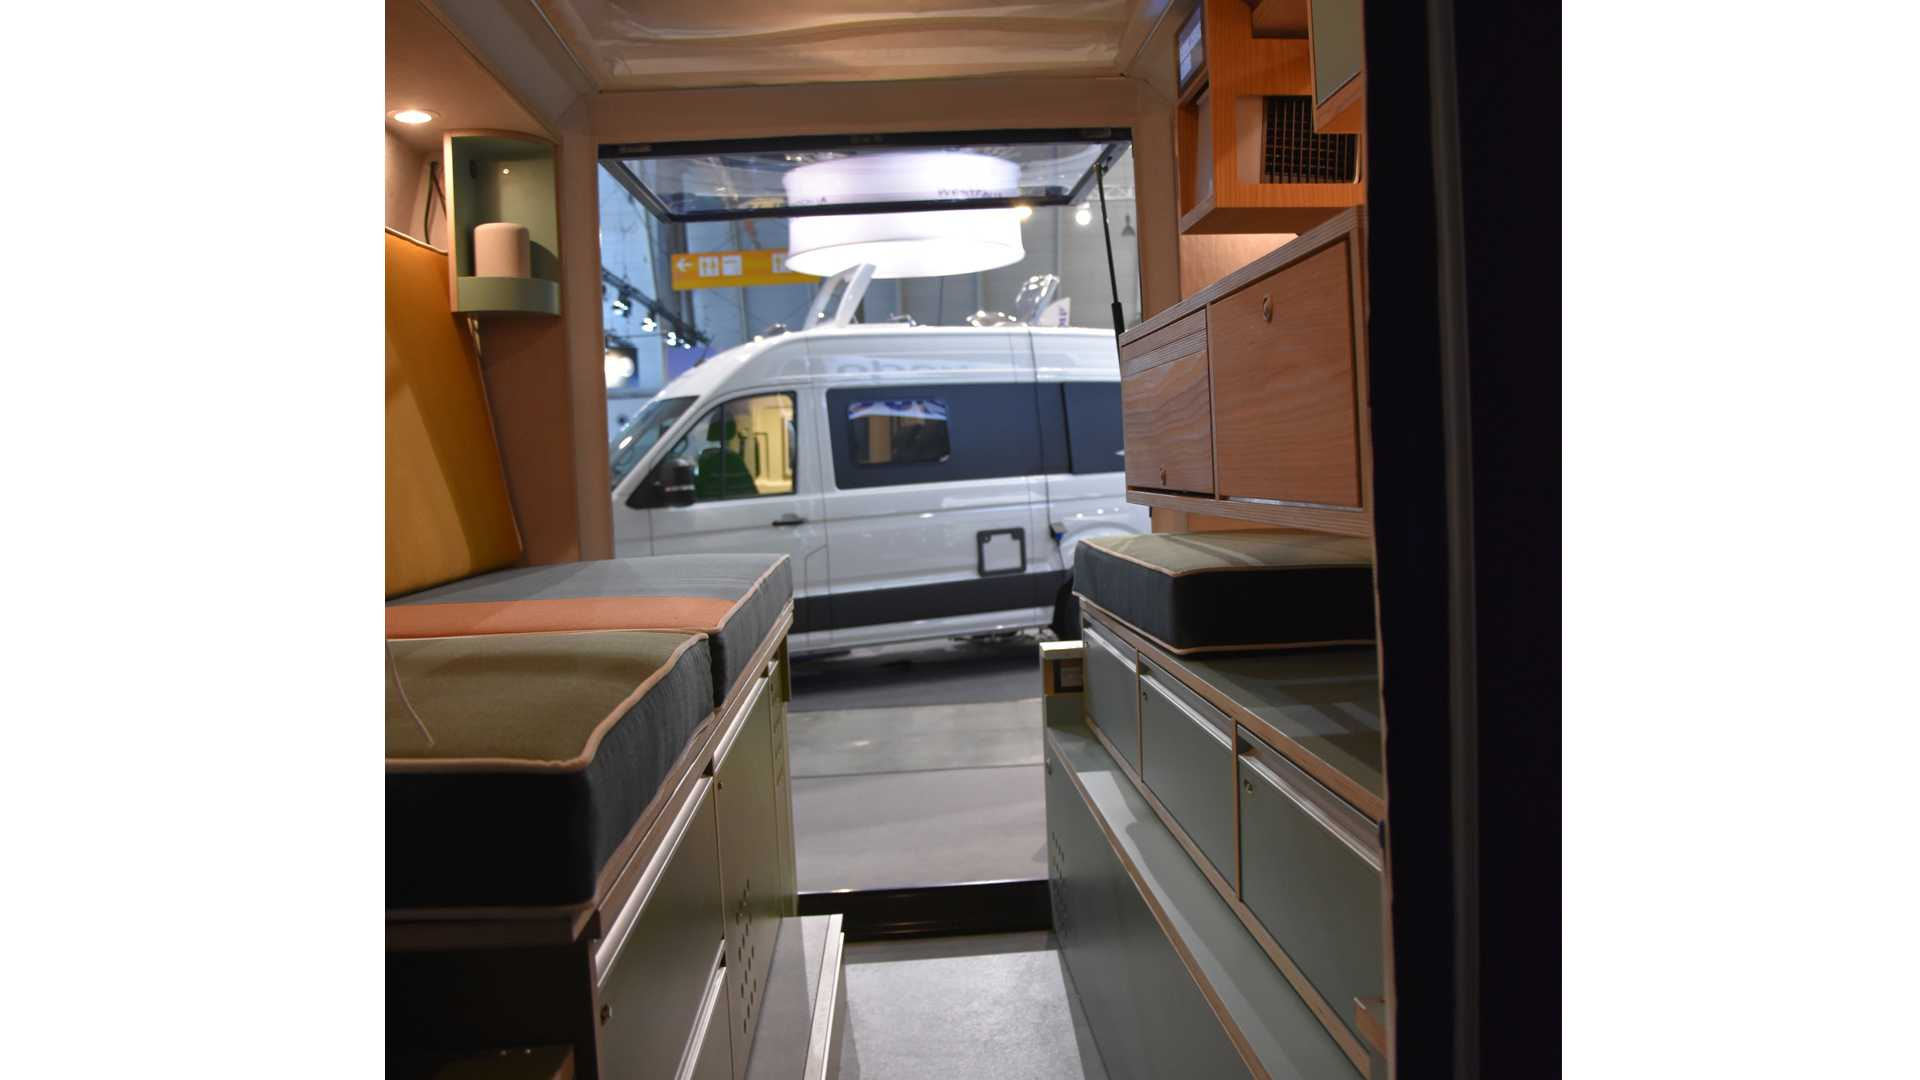 Plug-And-Play Camping Module Easily Turns Cargo Vans Into RVs